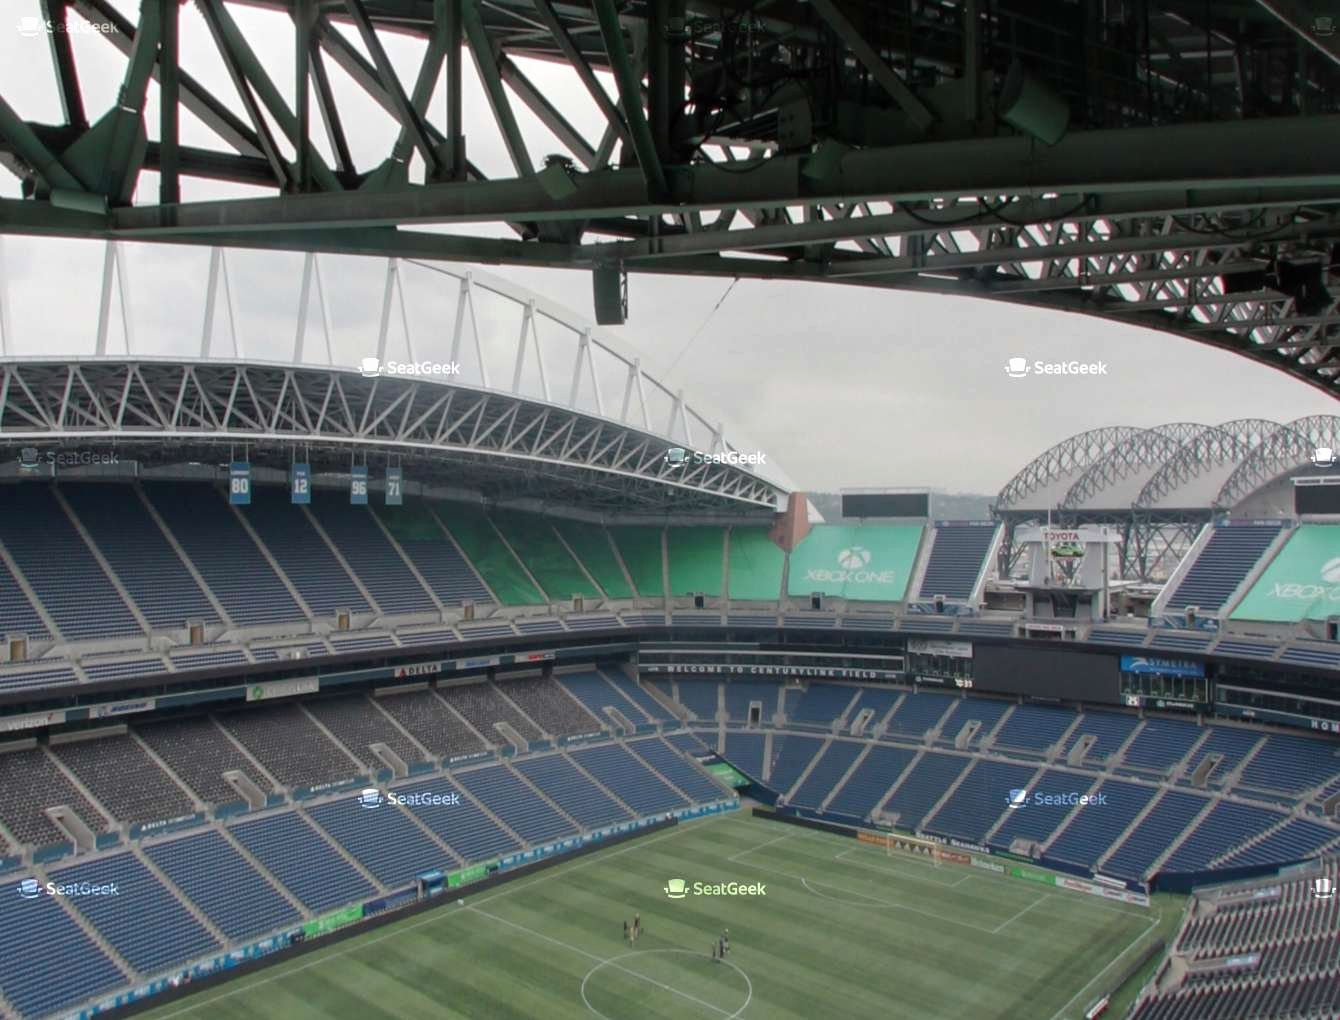 Sounders Seating Chart Unique Centurylink Field Upper 343 Seat Views